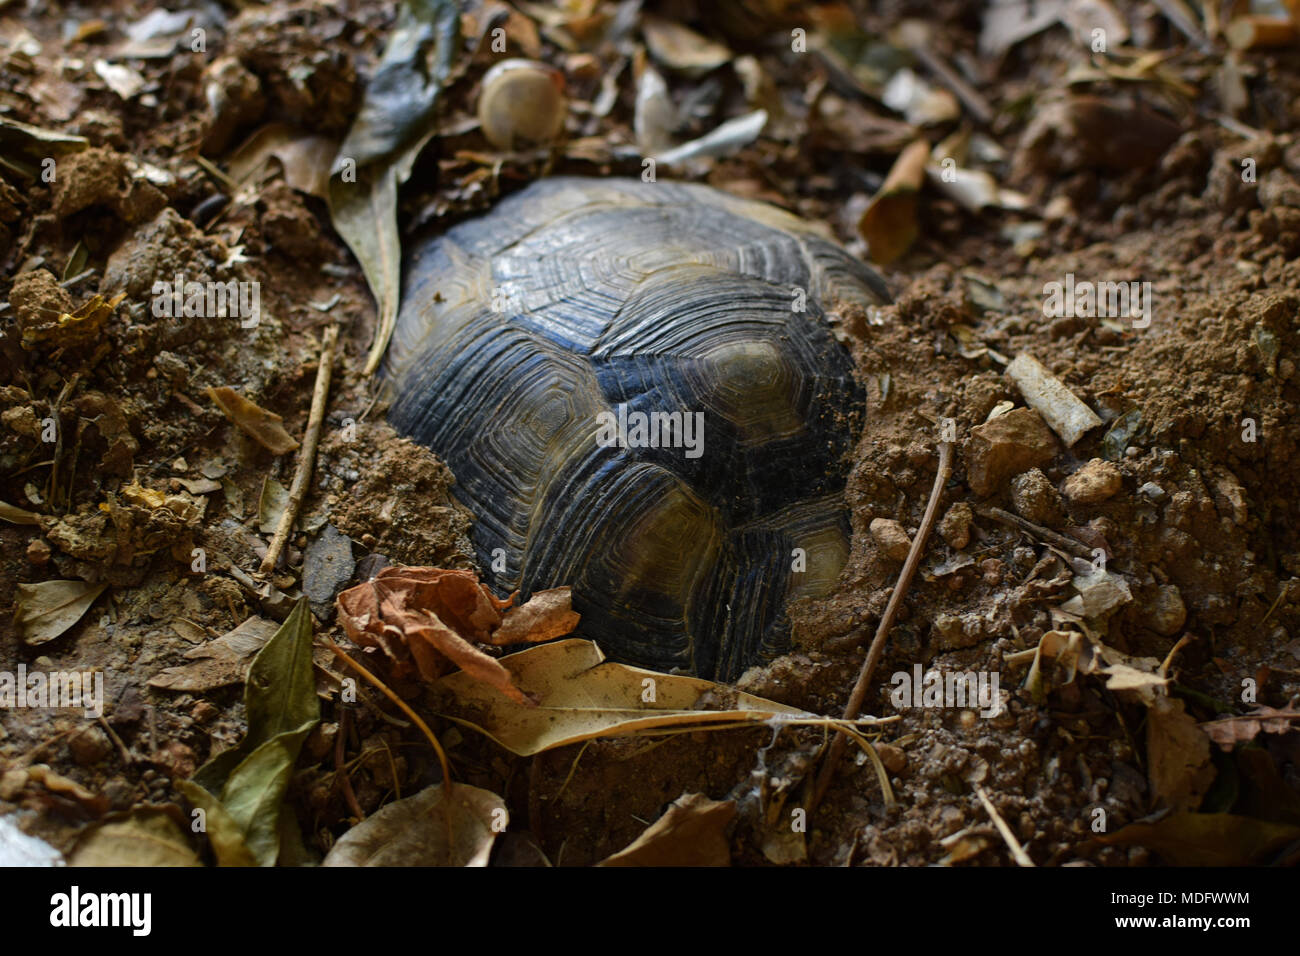 Turtle hibernating under soil on a cold winter day. Selective focus. - Stock Image